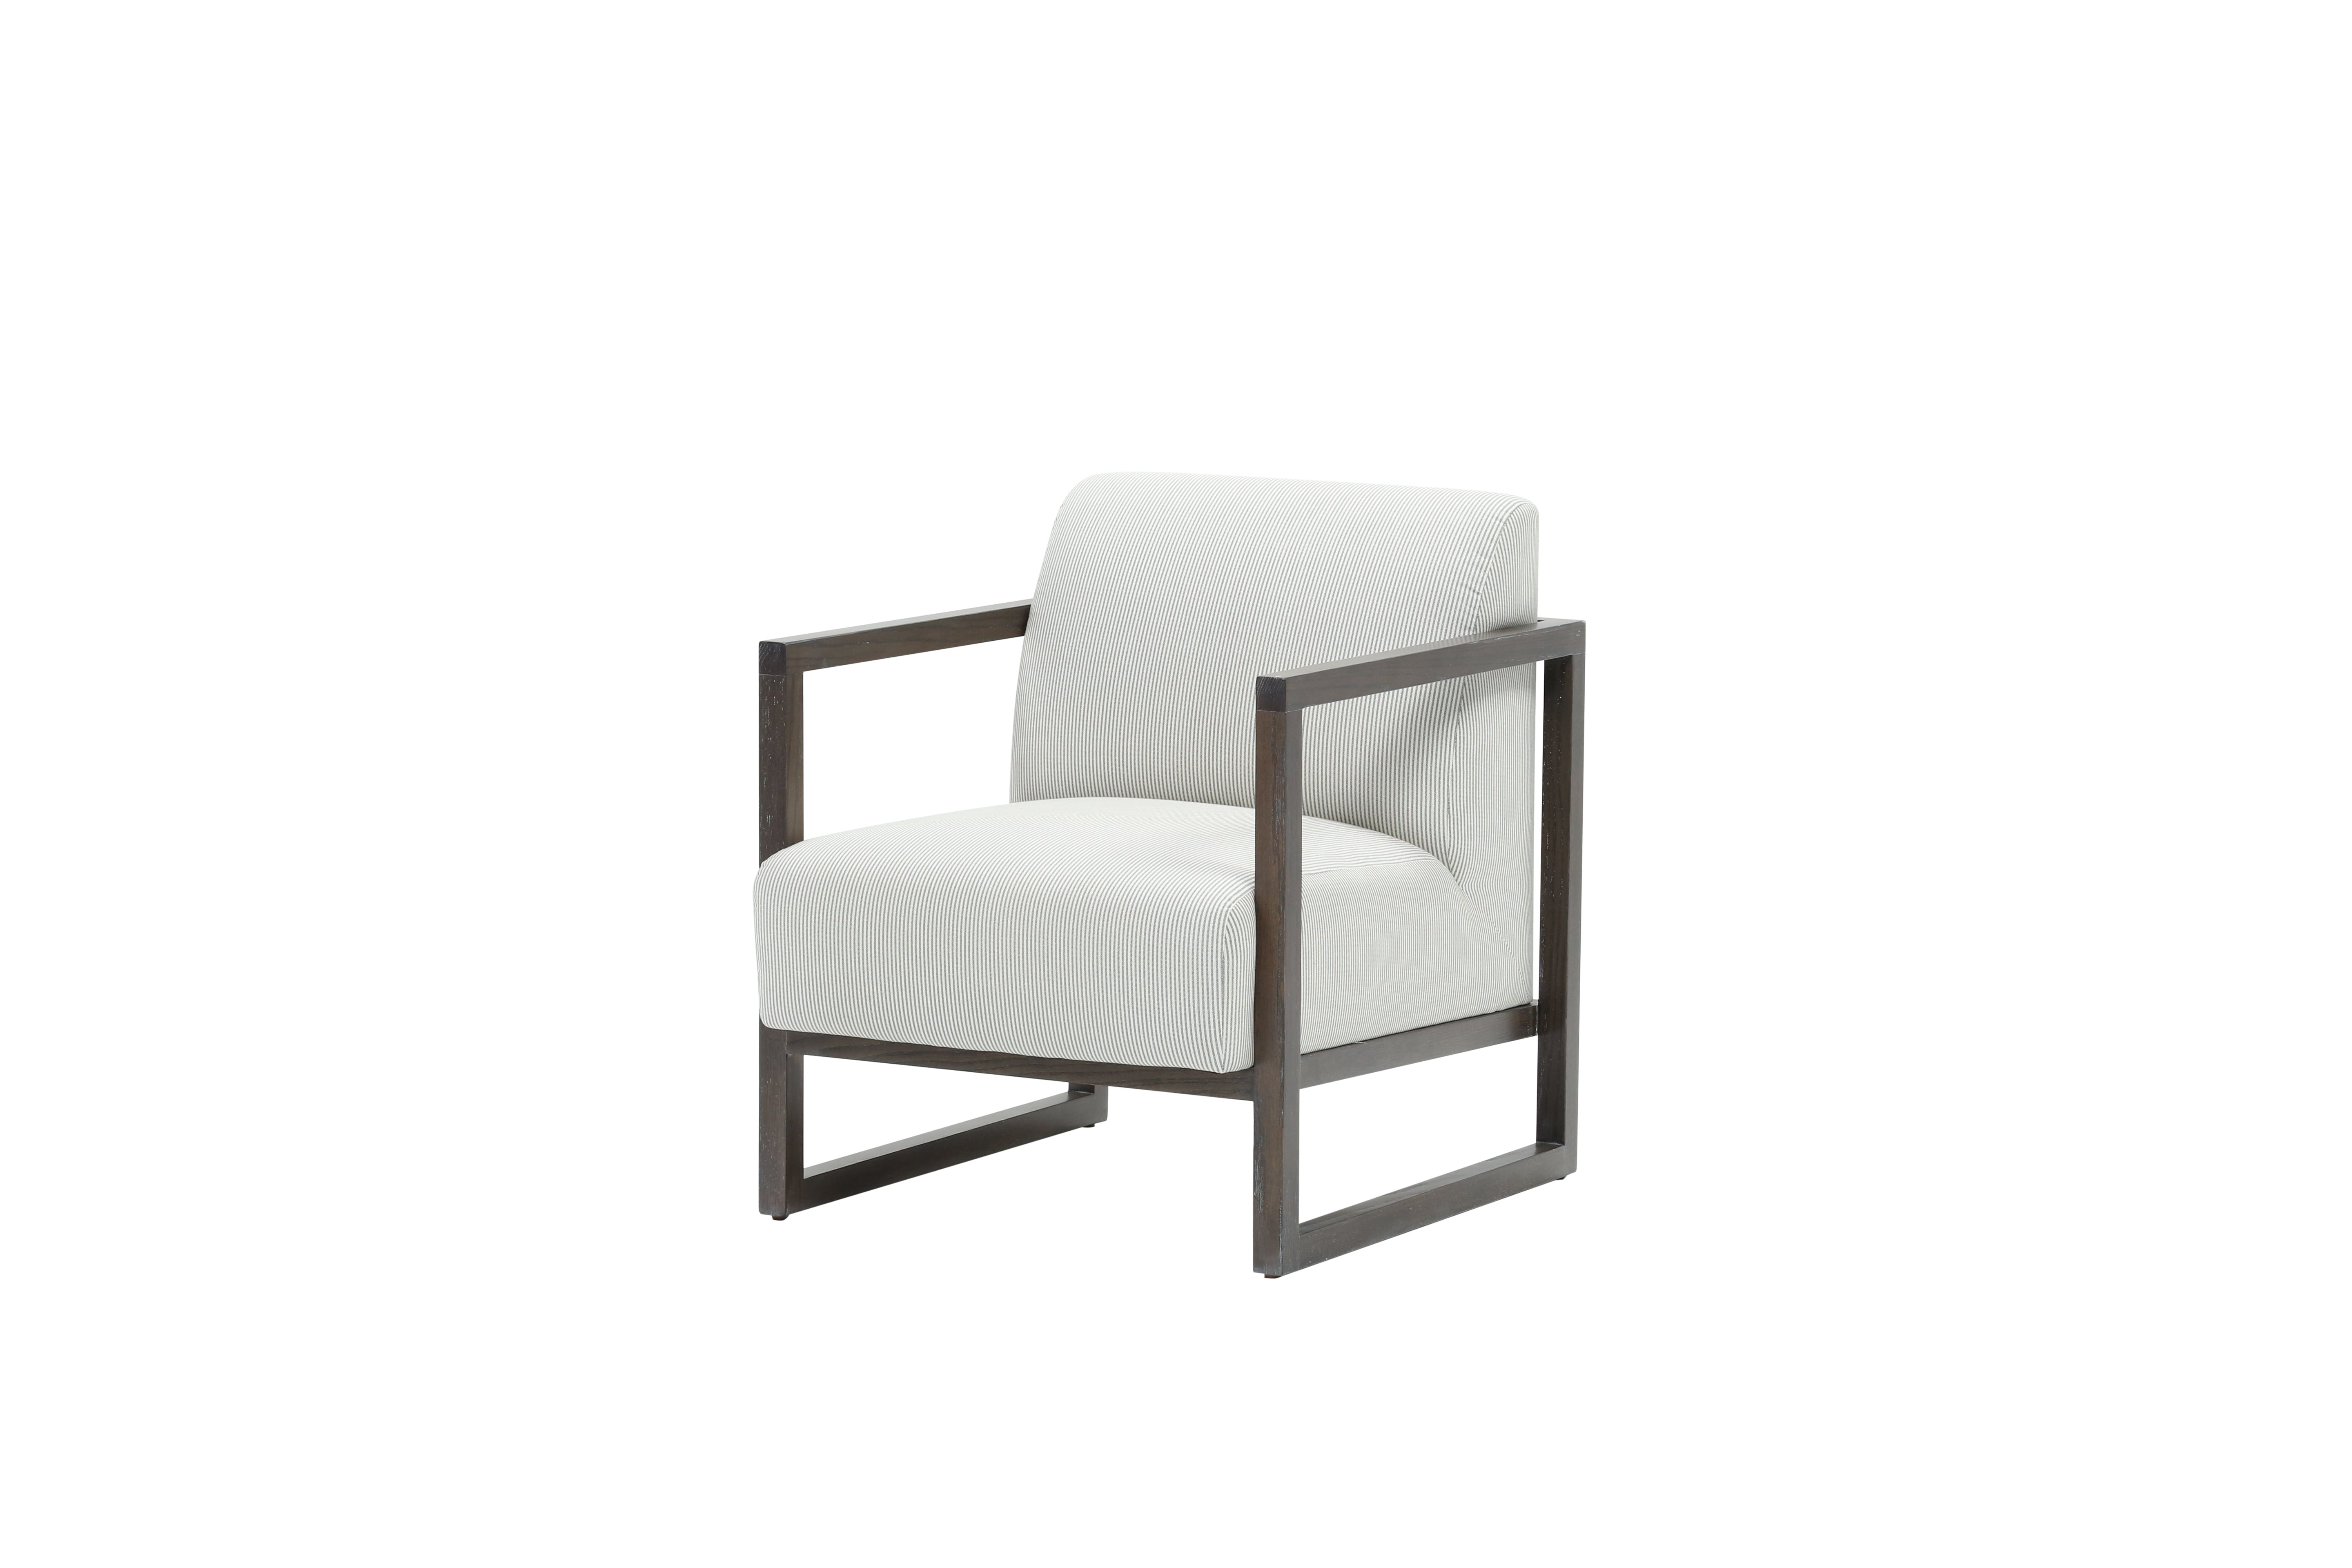 Preferred Nate Berkus Just Launched A Home Collection With Hubby Jeremiah Throughout Ames Arm Sofa Chairs By Nate Berkus And Jeremiah Brent (View 18 of 20)